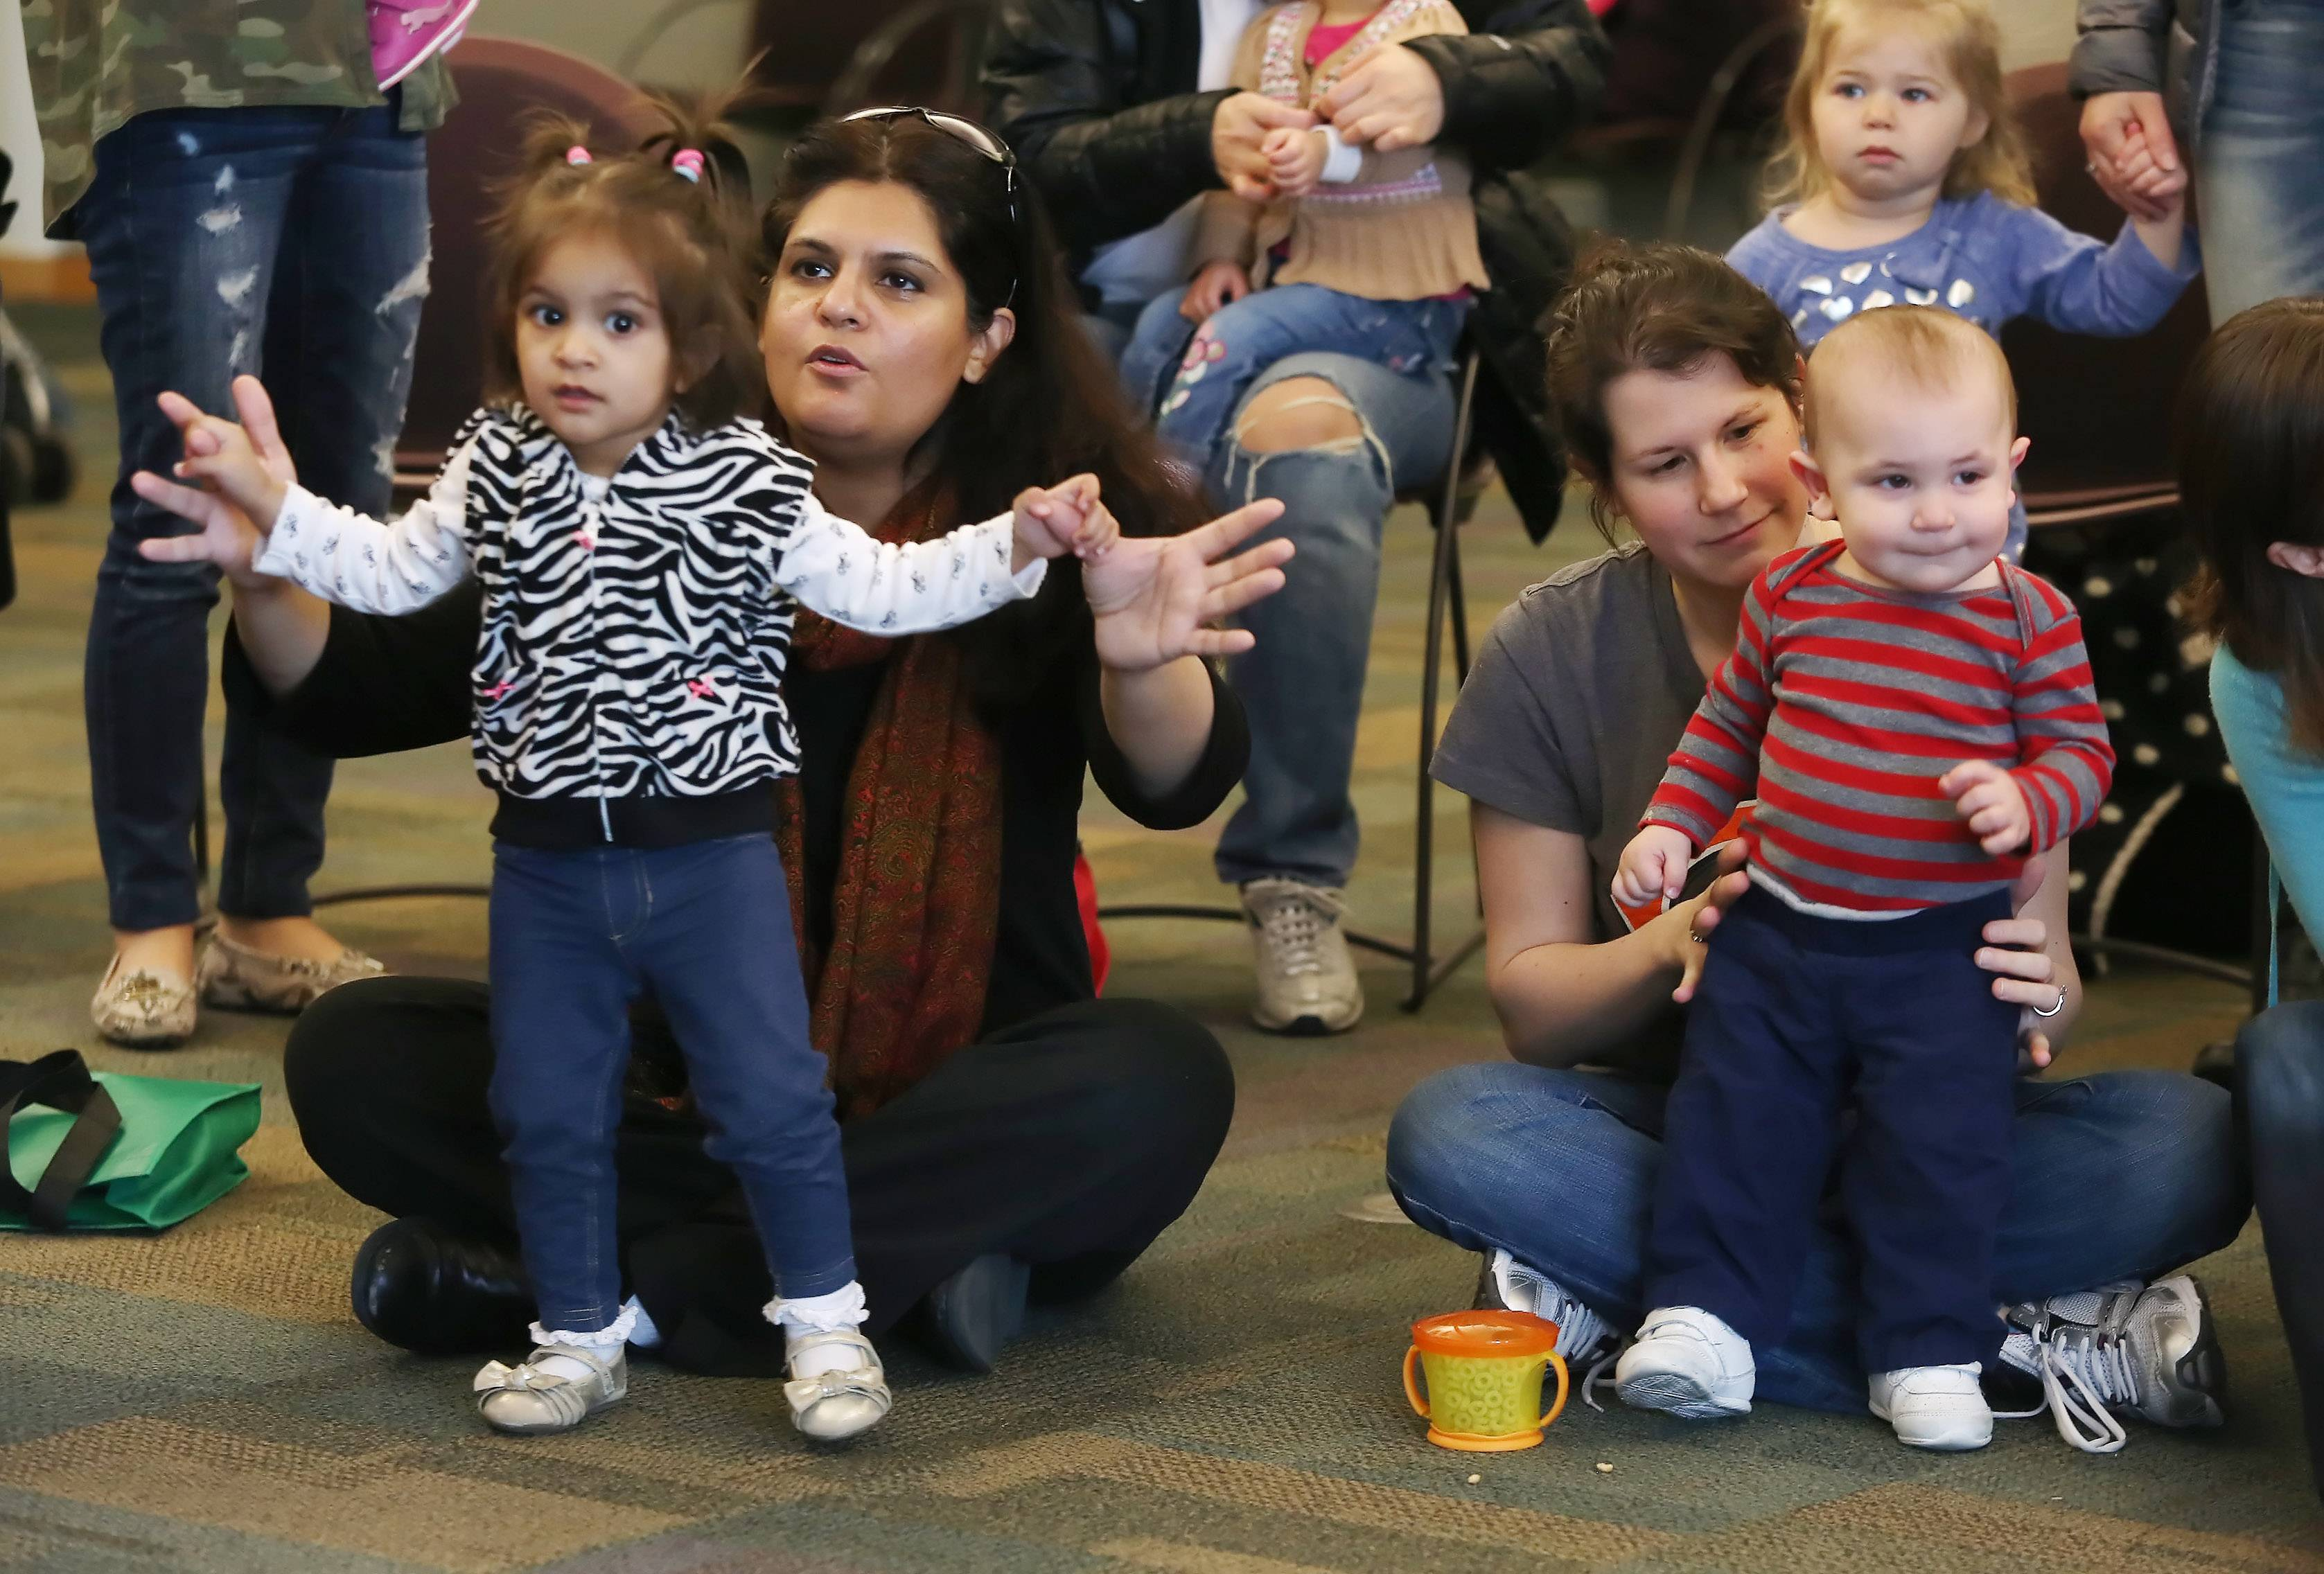 Samira Syed, left, of Vernon Hills, with her daughter, Shifa, 20-months-old, and Jamie Schillinger, of Buffalo Grove, with Clark, 1, dance to a song during the Giggles & Wiggles kids music program at Vernon Area Public Library in Lincolnshire. The kids music program is for children 15-24 months and helps them connect with sounds, dance, and music.